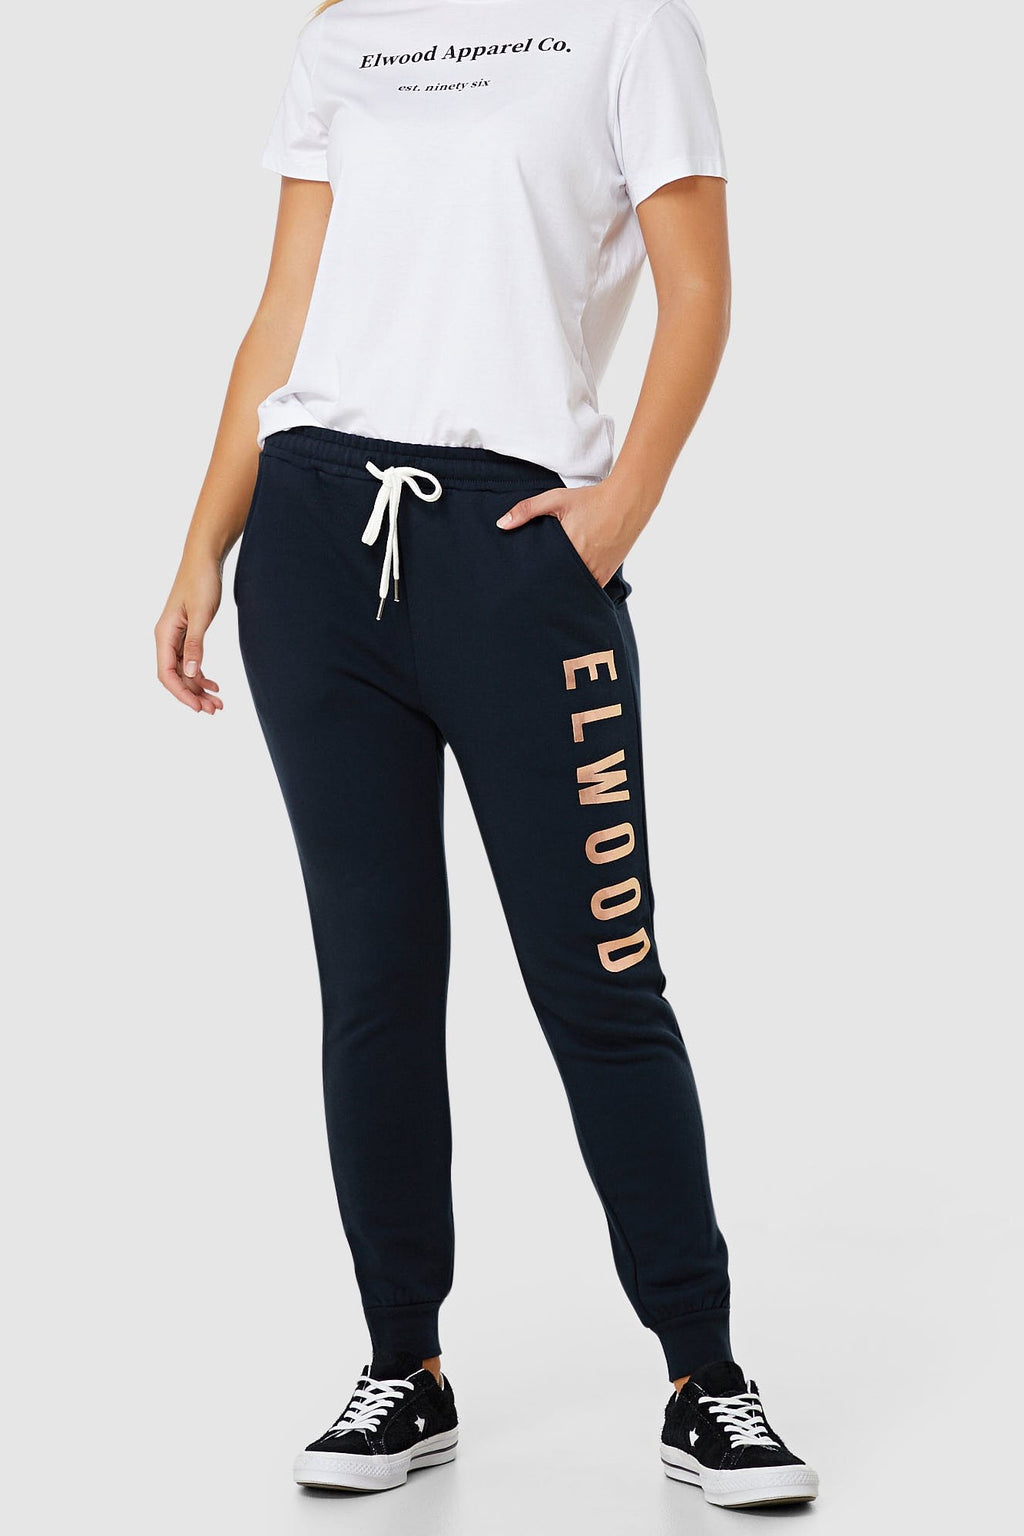 Huff n Puff Track Pants - Navy & Gold